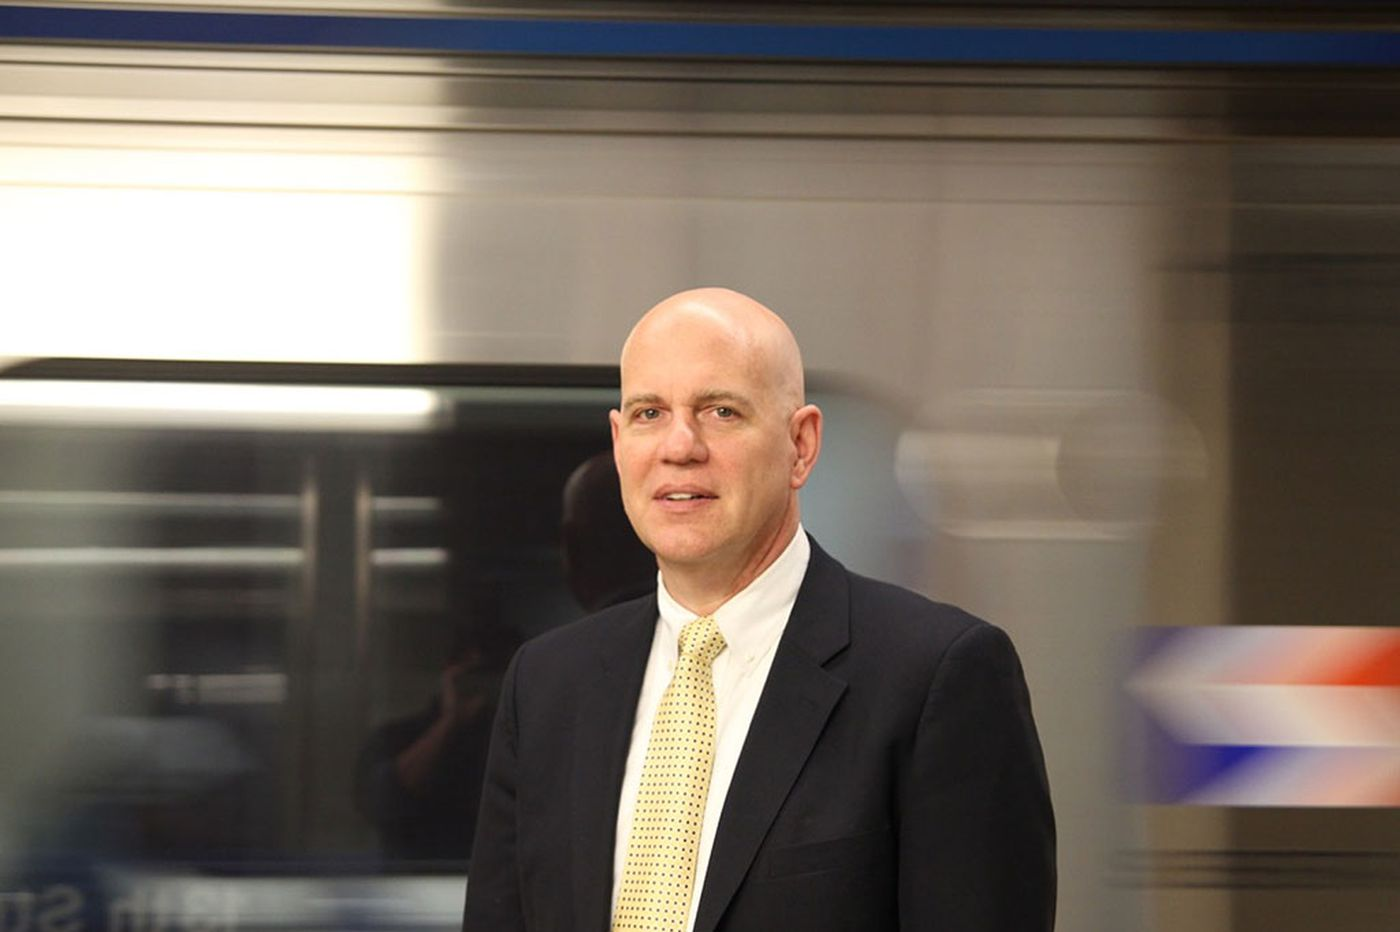 SEPTA's general manager to depart this year